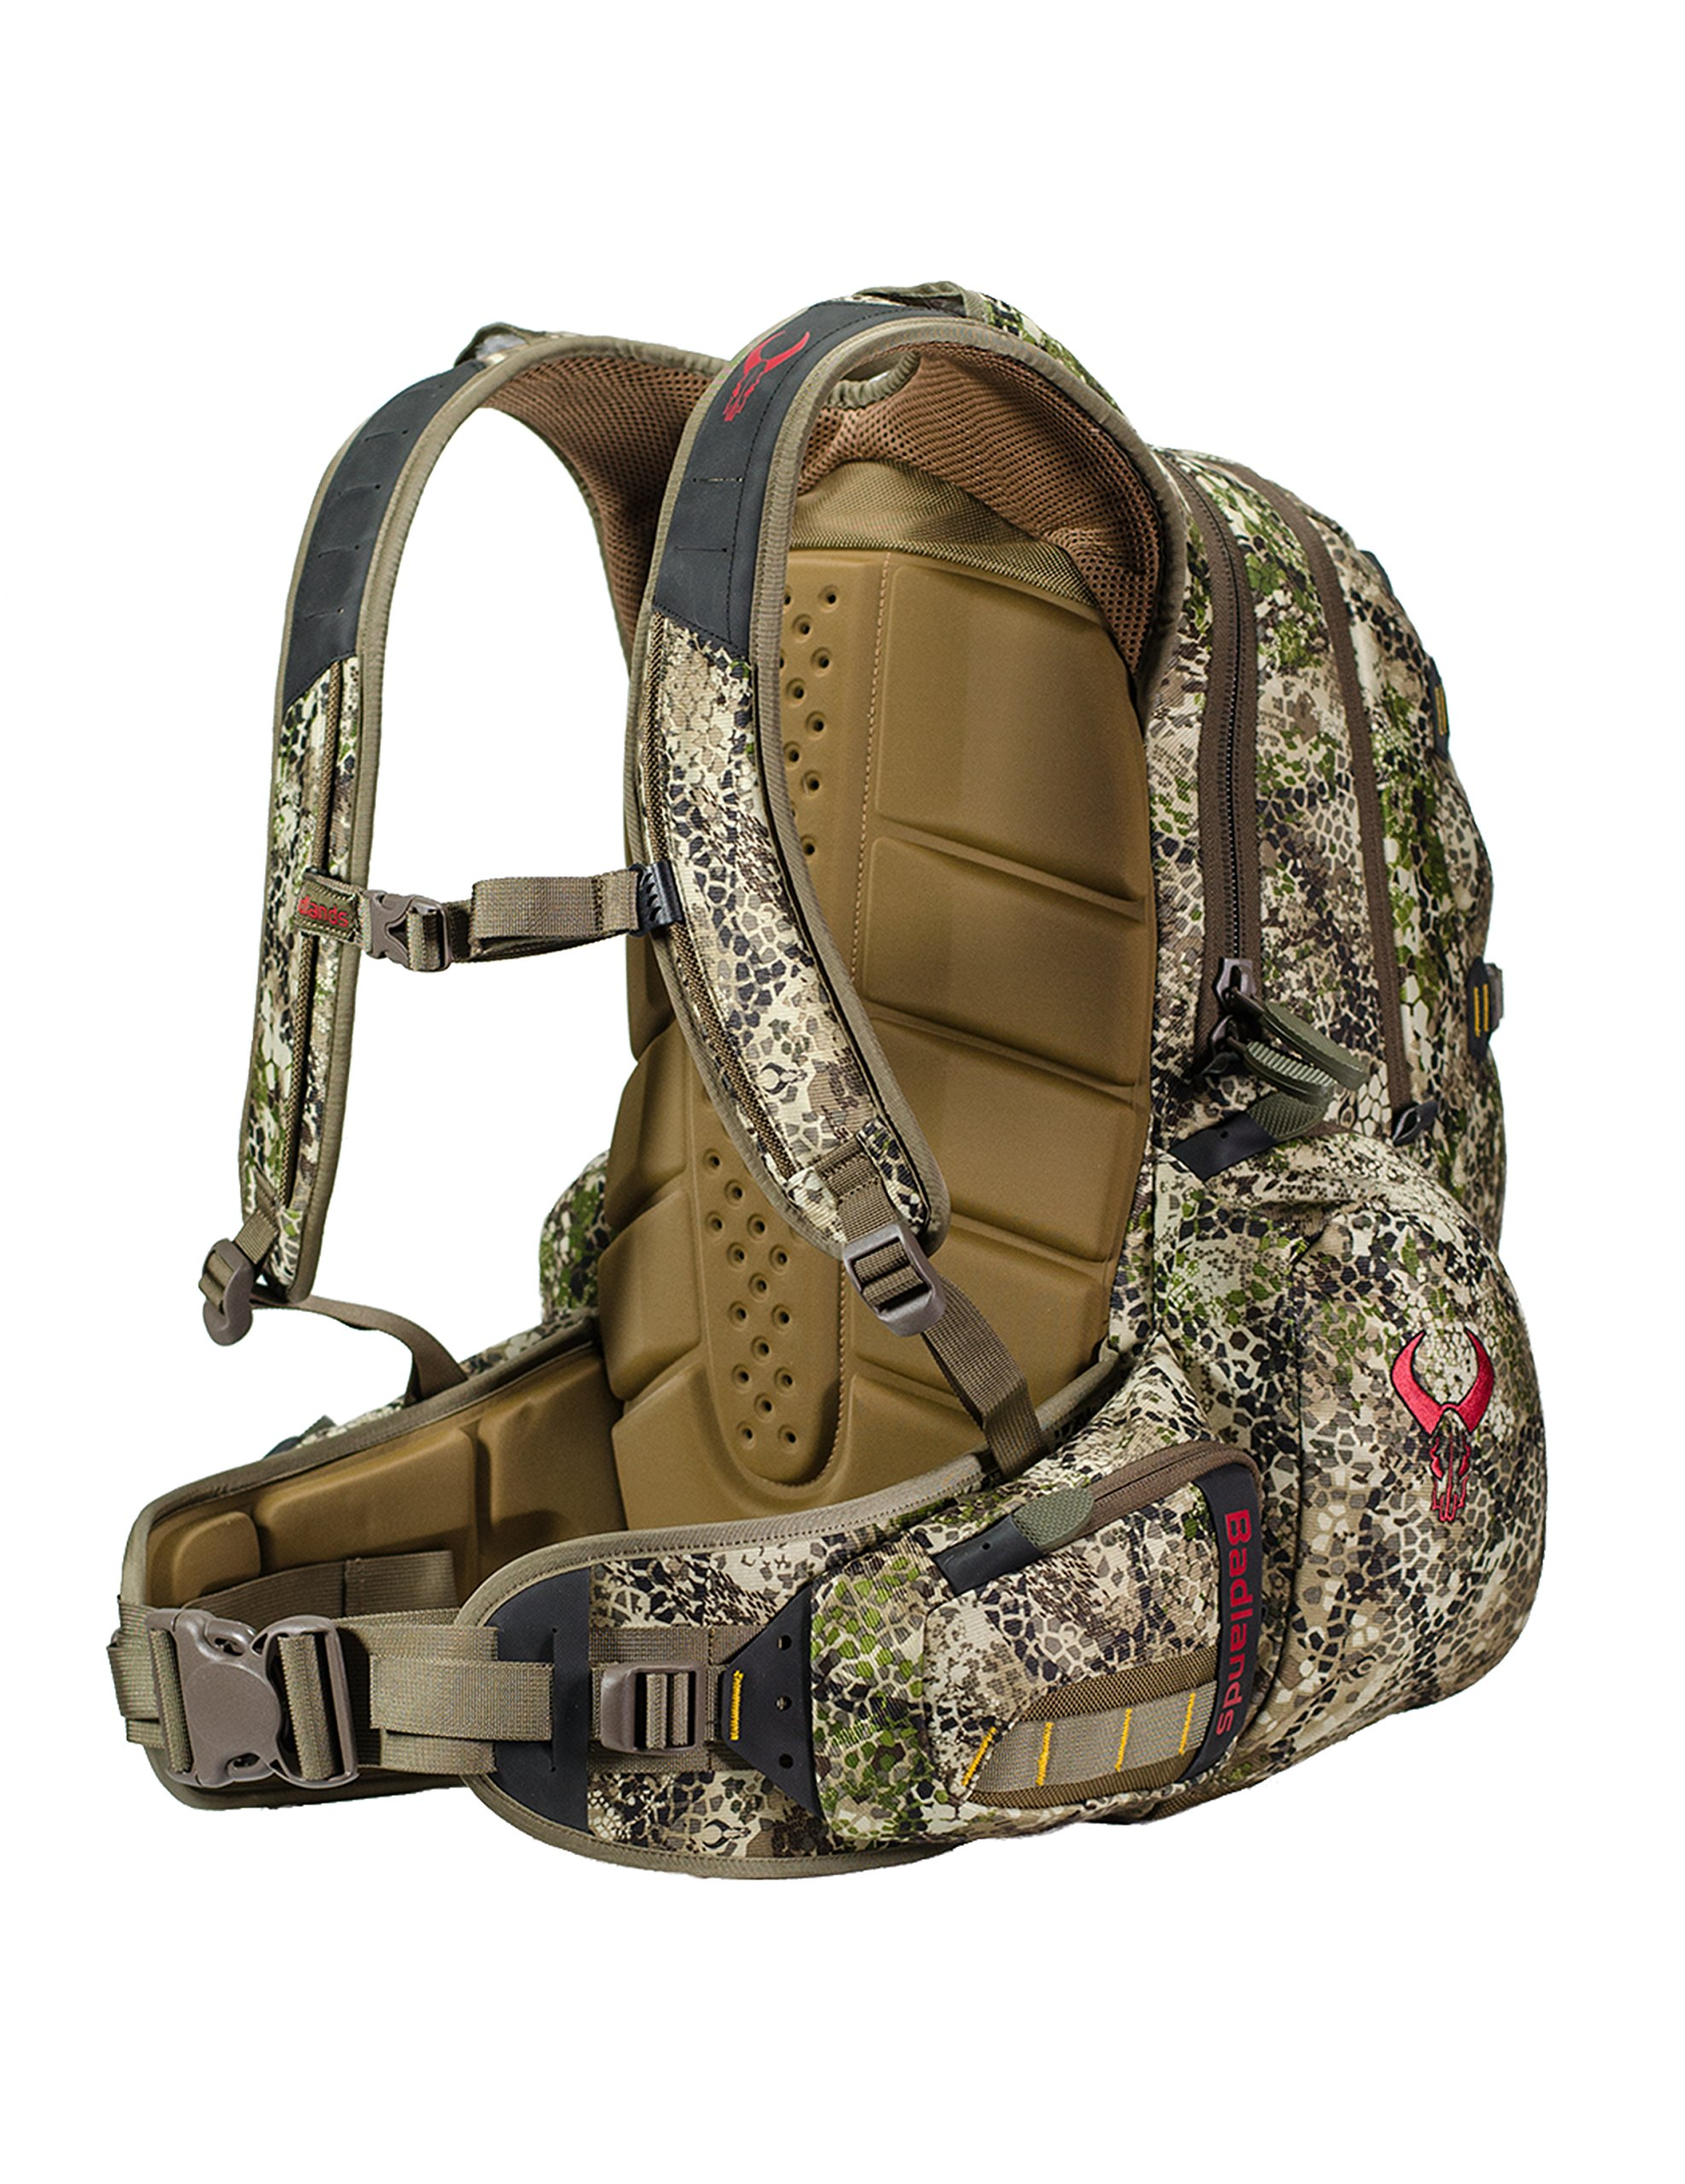 Badlands Superday Camouflage Hunting Backpack - Bow, Rifle, and Pistol Compatible, Approach Camo by Badlands (Image #3)